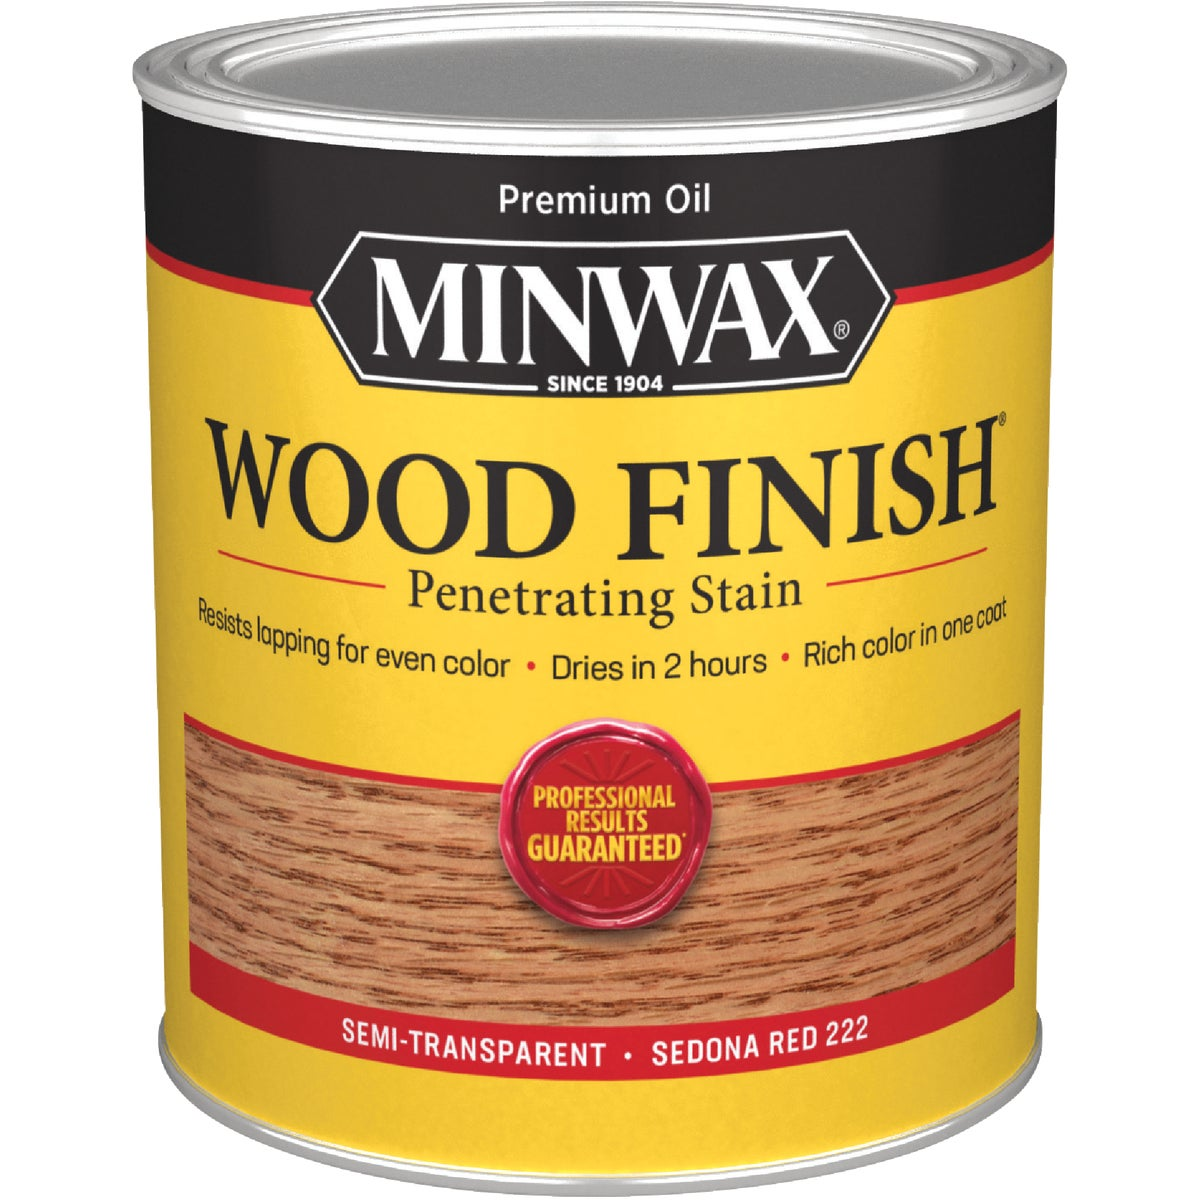 SEDONA RED WOOD STAIN - 70043 by Minwax Company